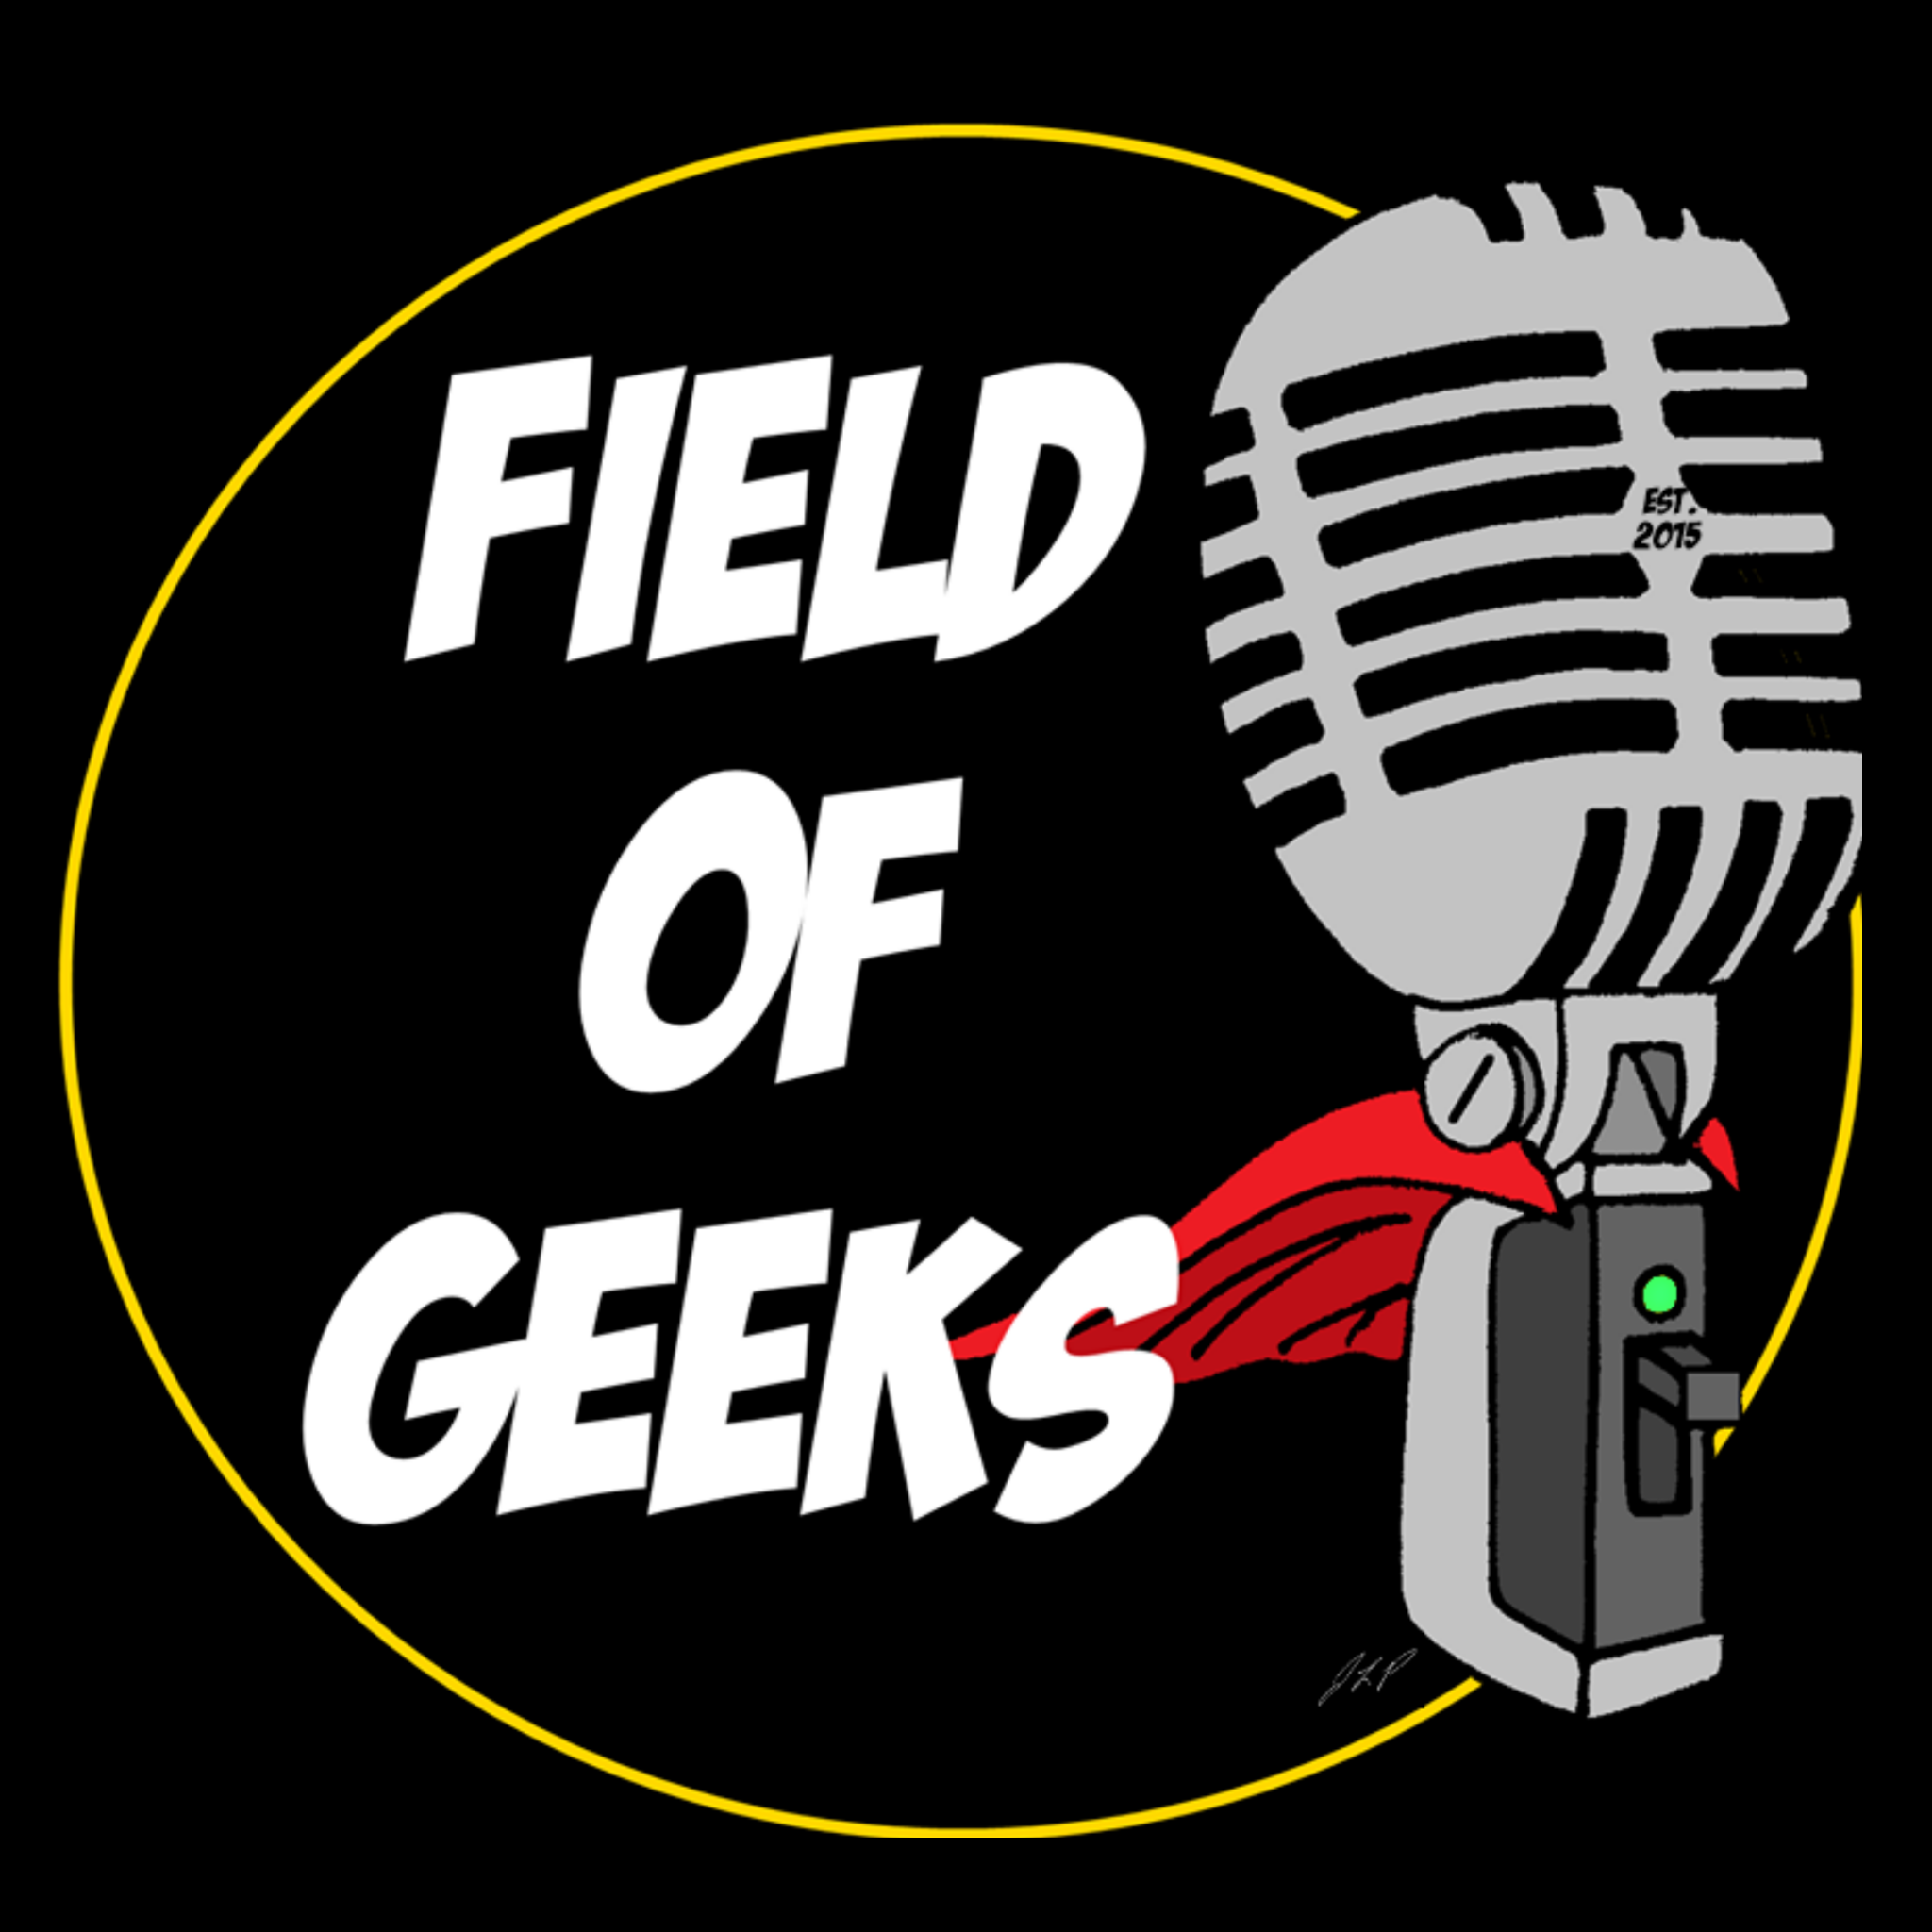 Episode 67 - HELLBOY REBOOTING, GOTG VOL.2 THOUGHTS, WIZARD WORLD DM 2017, AND MORE YA'LL!